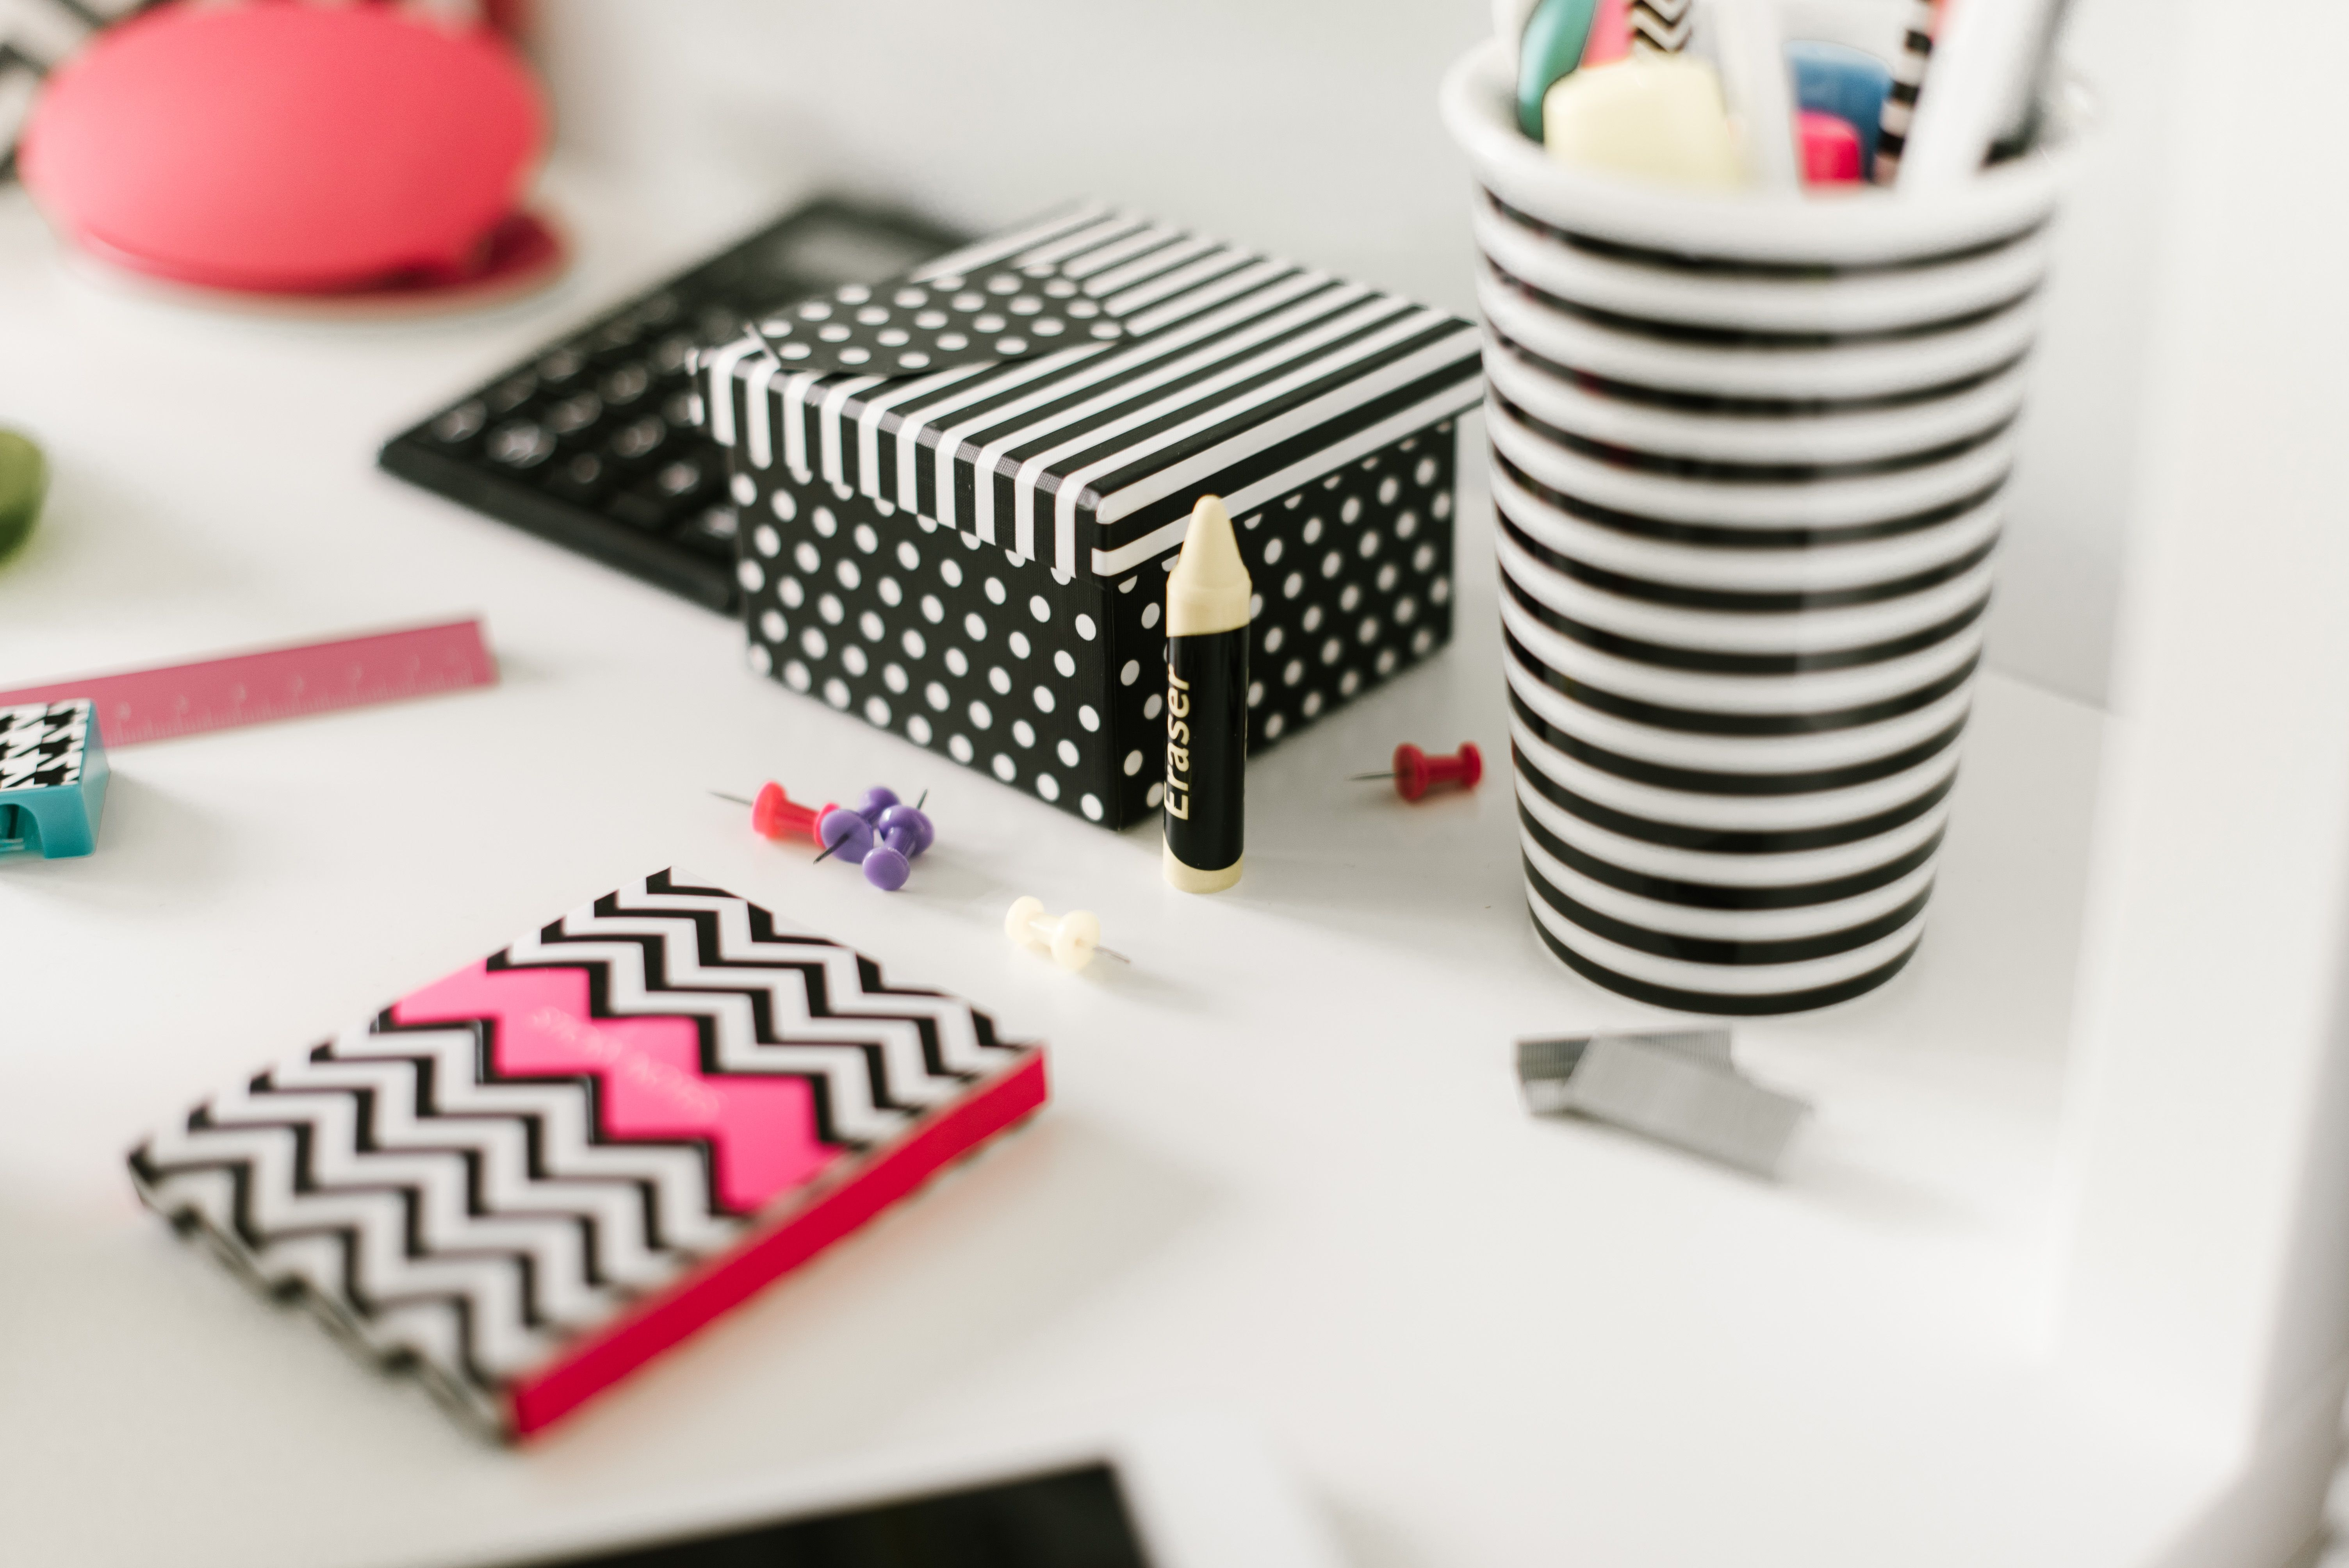 Keep organised with the cool book of sticky notes from the Lexi Collection stationery range